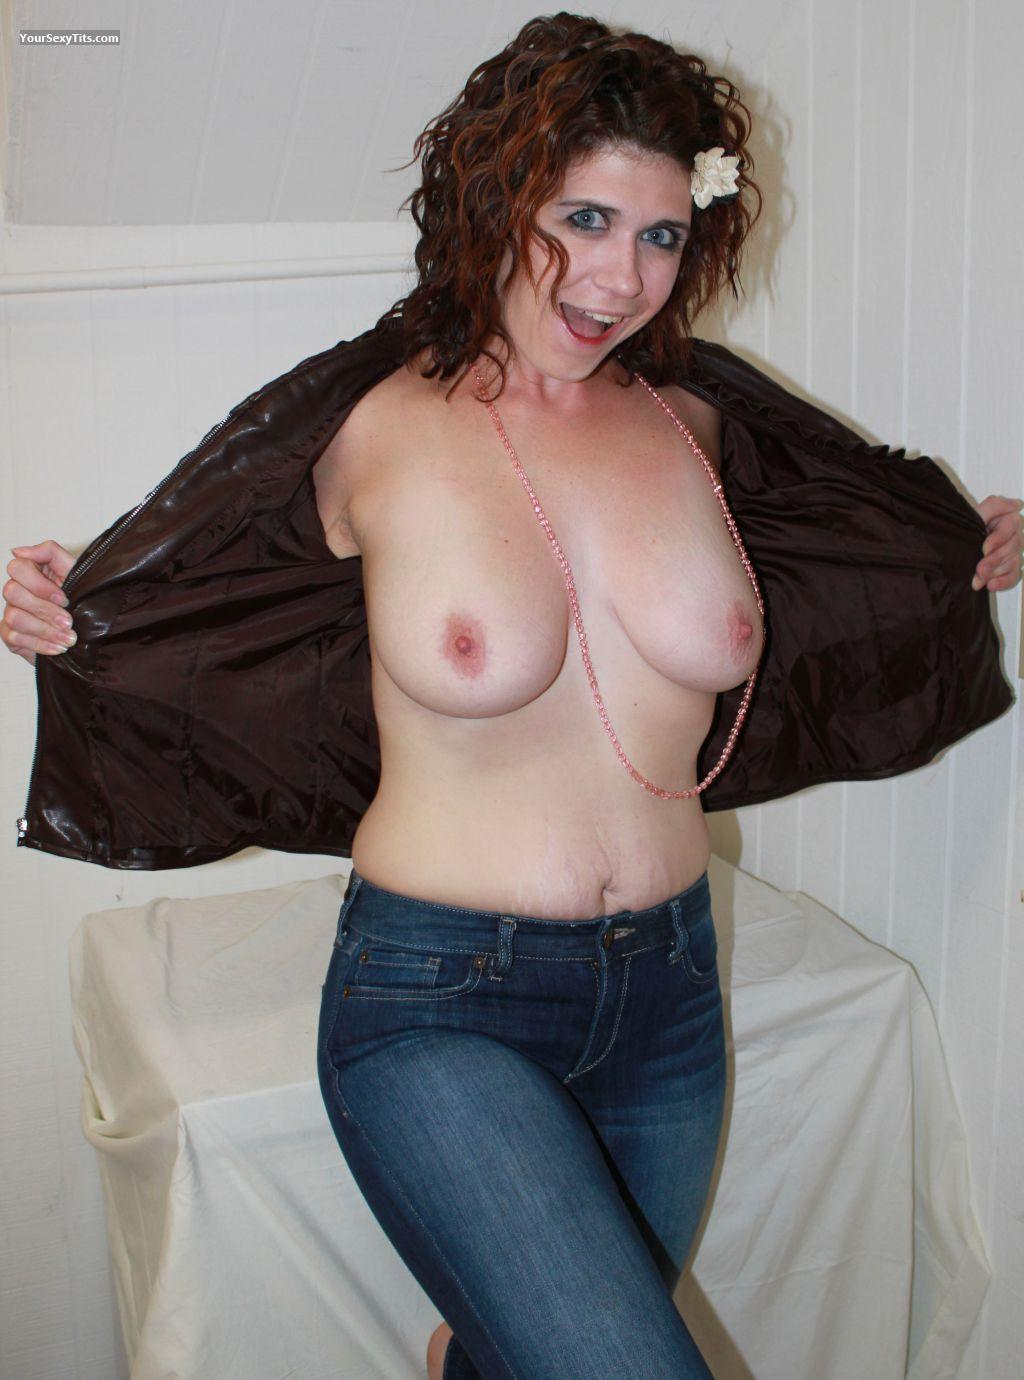 Tit Flash: Medium Tits - Topless Scarlet from United States